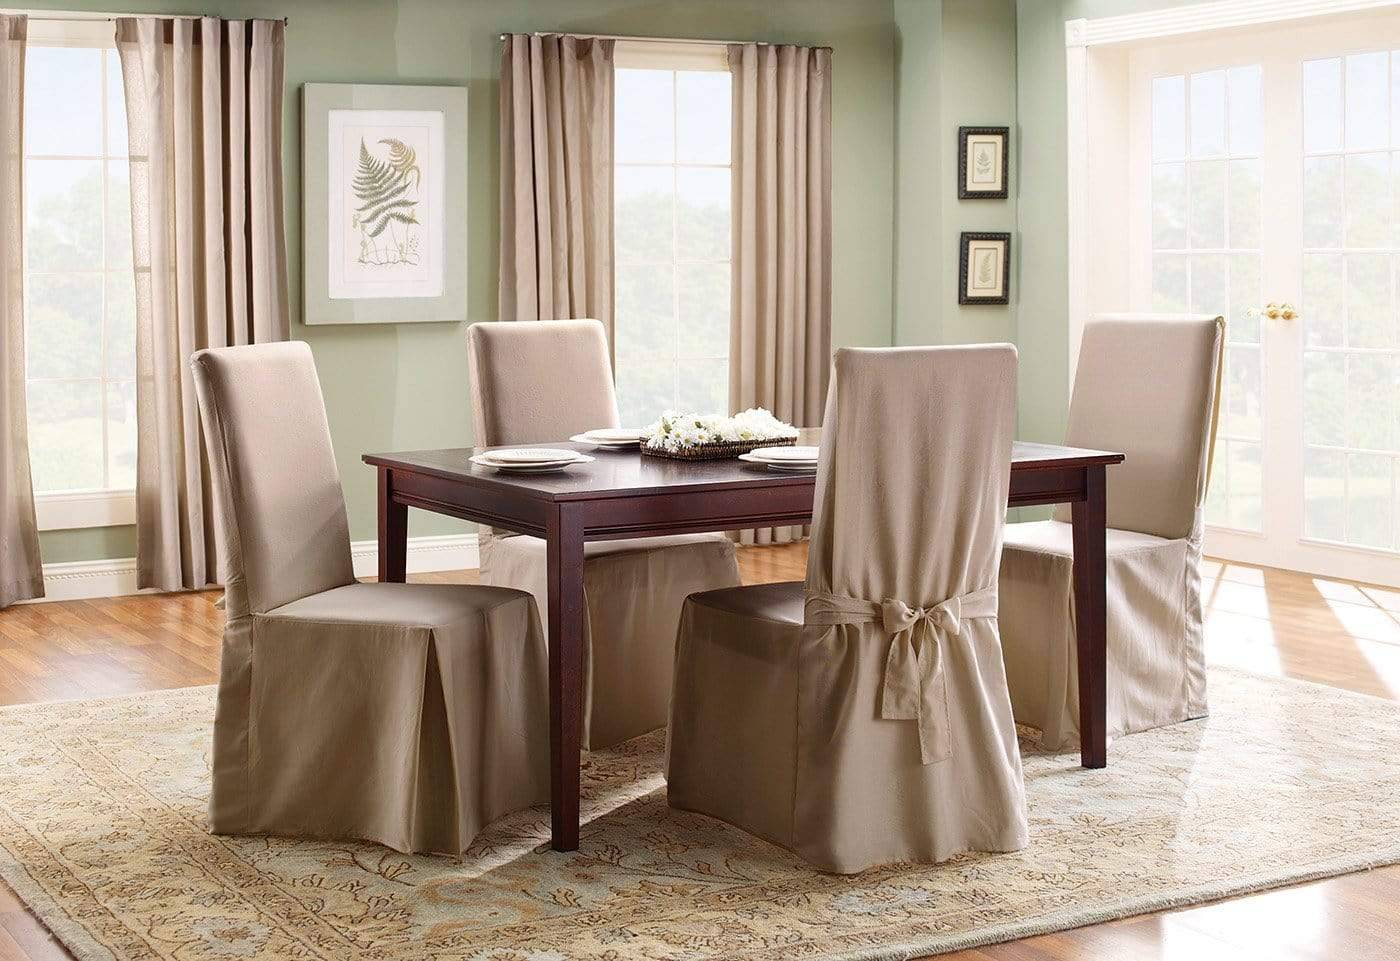 Cotton Duck Long Dining Chair Slipcover One Piece 100% Cotton Machine Washable - Dining Chair / Linen